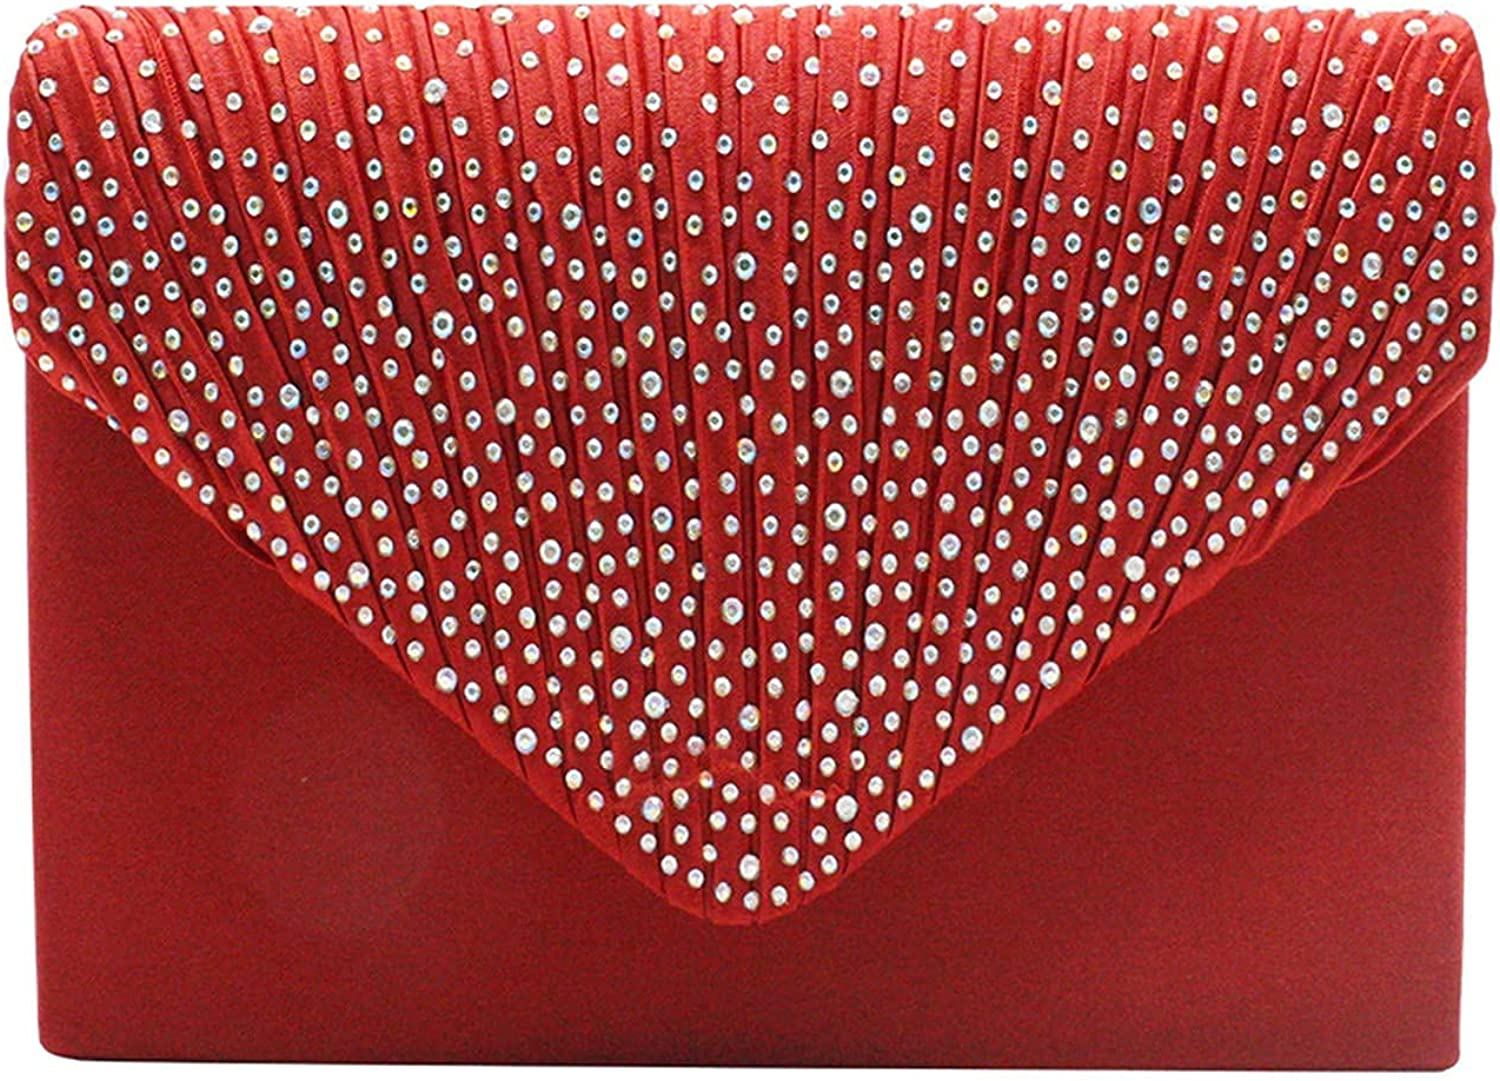 Sequins Clutch Purses for Women Evening Bag Wedding Clutches for Women Chain Phone Bag